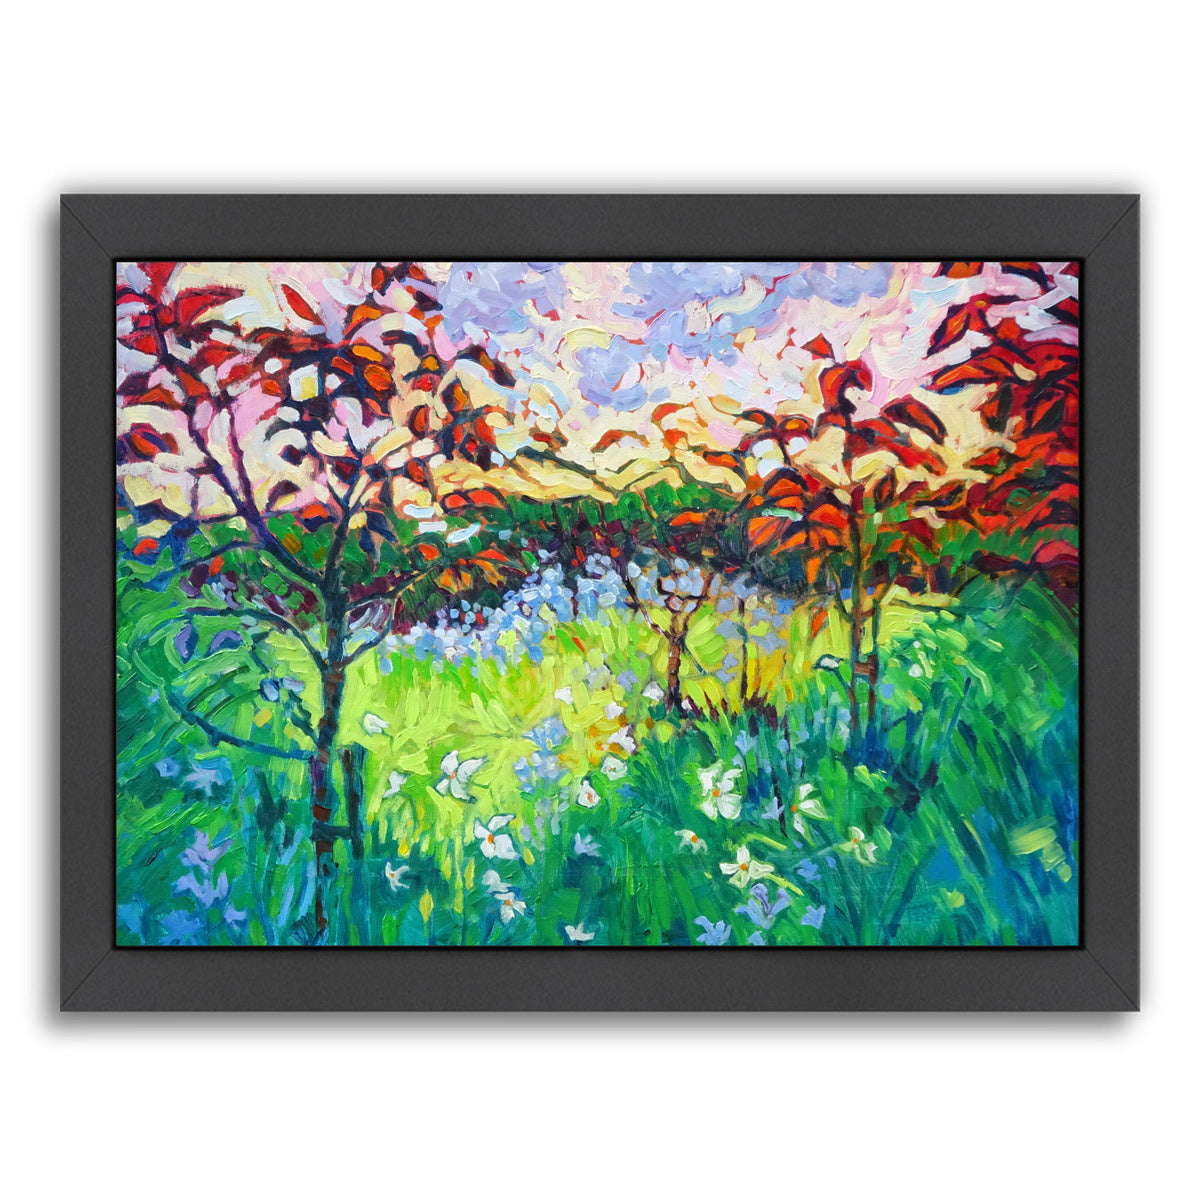 "Garden At Houghton Hall By Mary Kemp - Black Framed Print, Wall Art, Mary Kemp, 8"" x 10"""